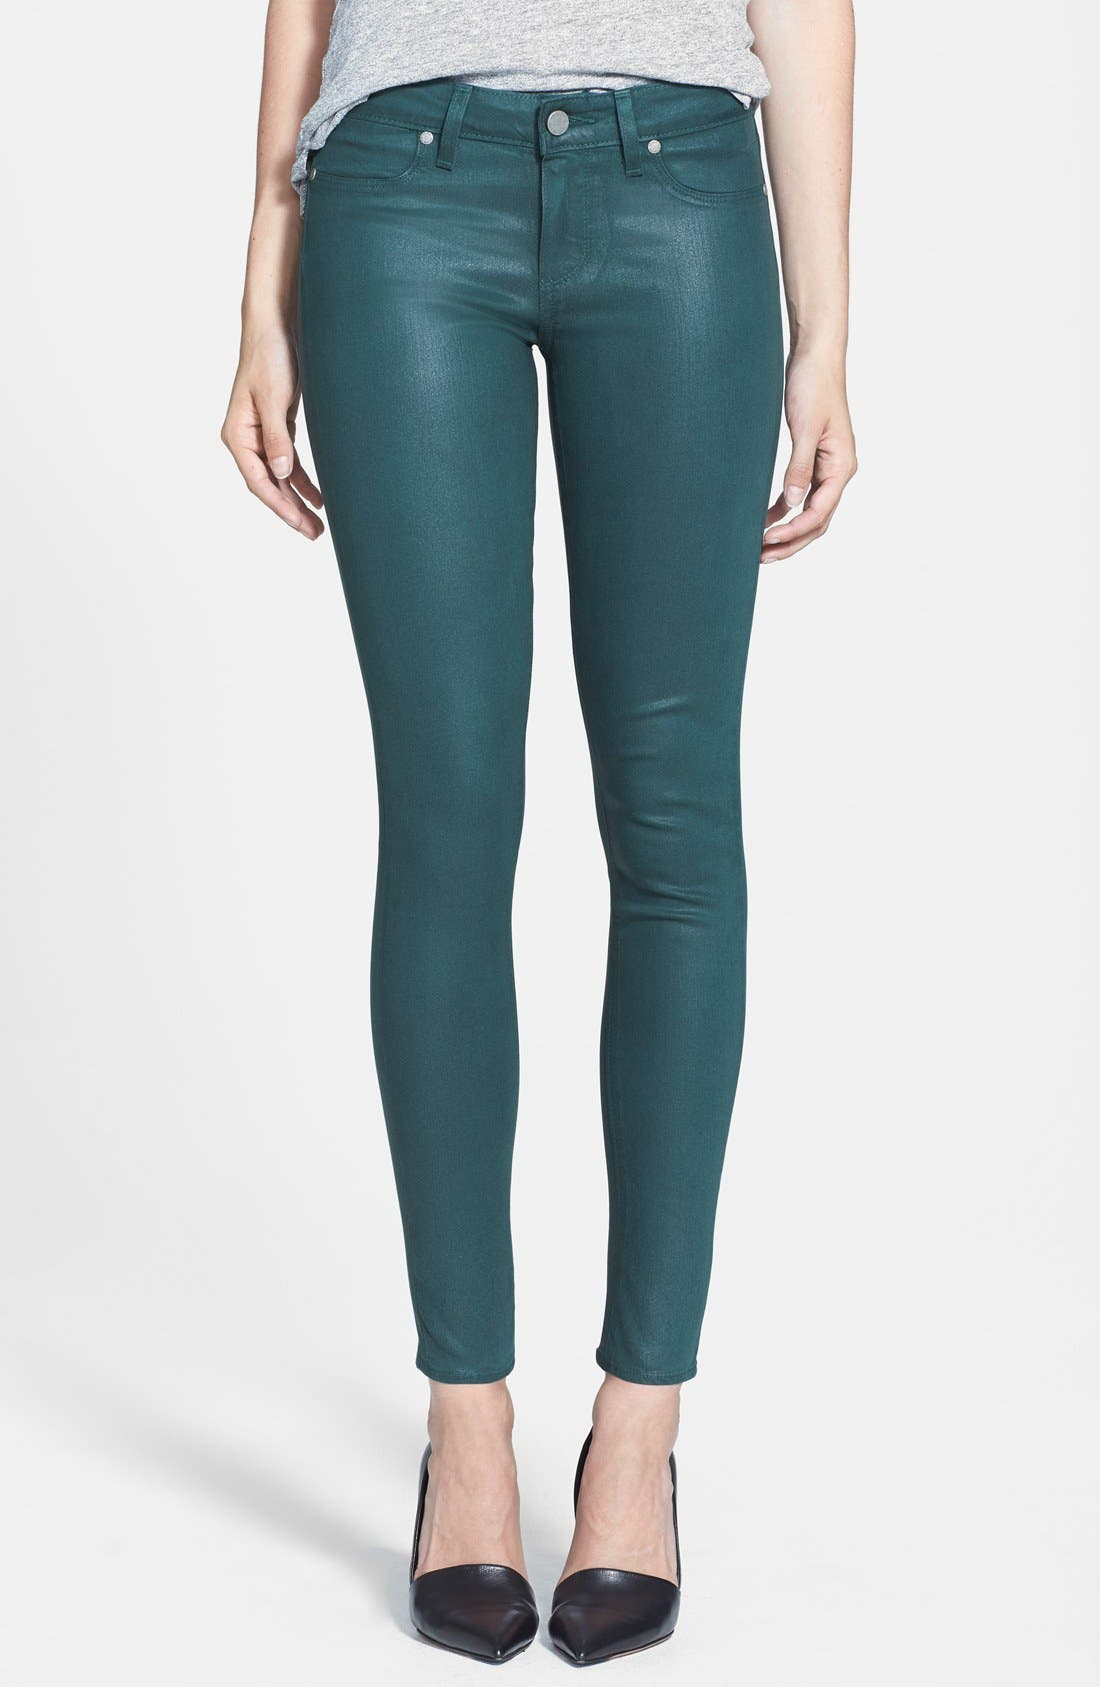 Alternate Image 1 Selected - Paige Denim 'Verdugo' Coated Ultra Skinny Ankle Jeans (Forest Silk)